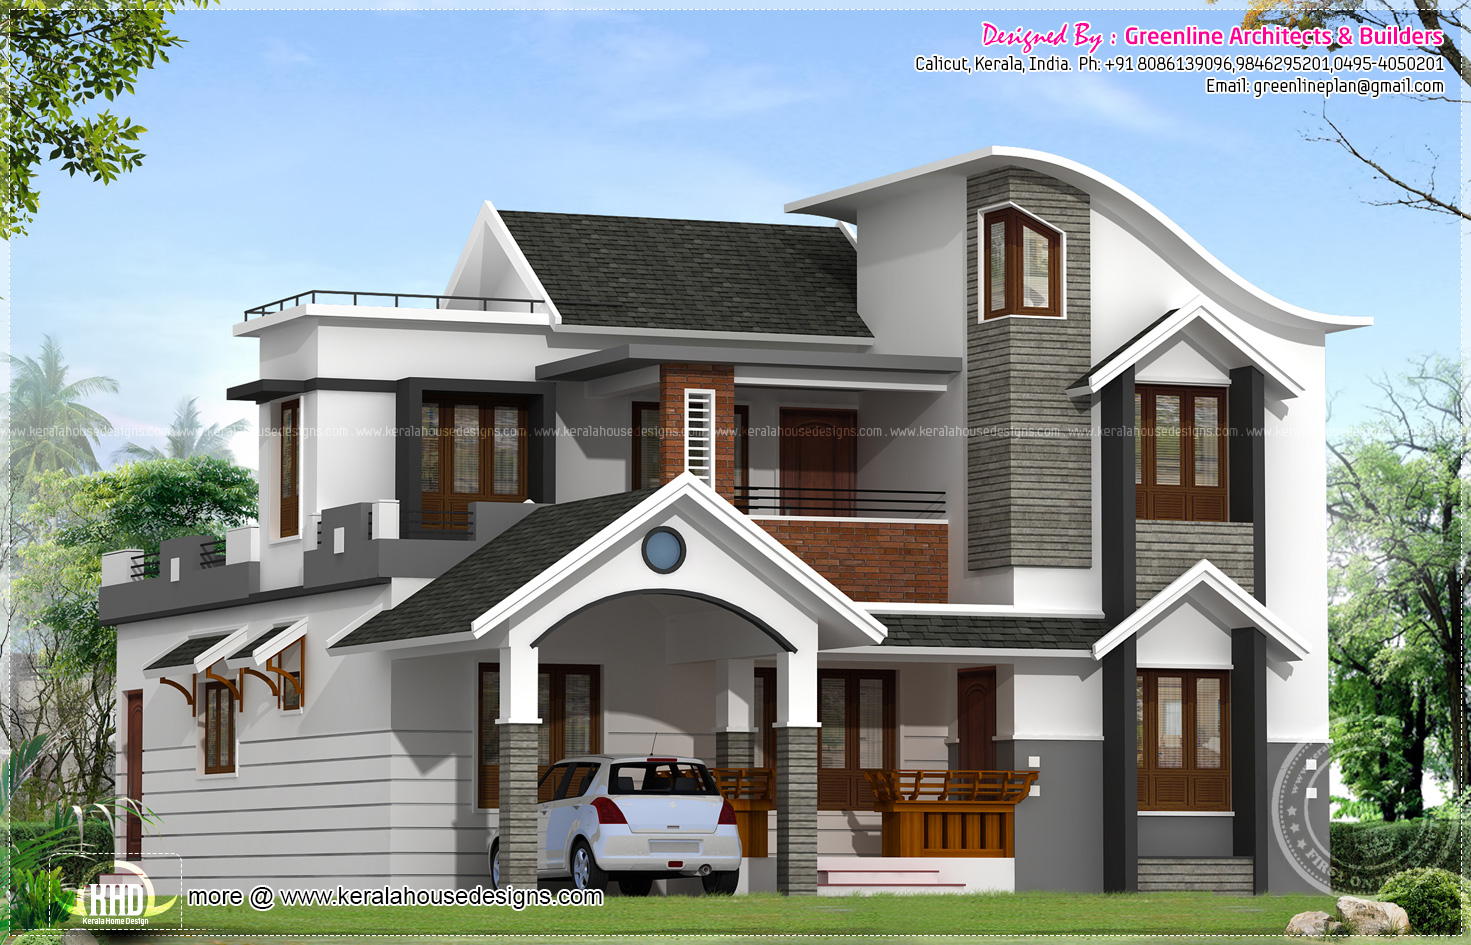 Modern house architecture in kerala kerala home design for 4 bedroom house plans kerala style architect